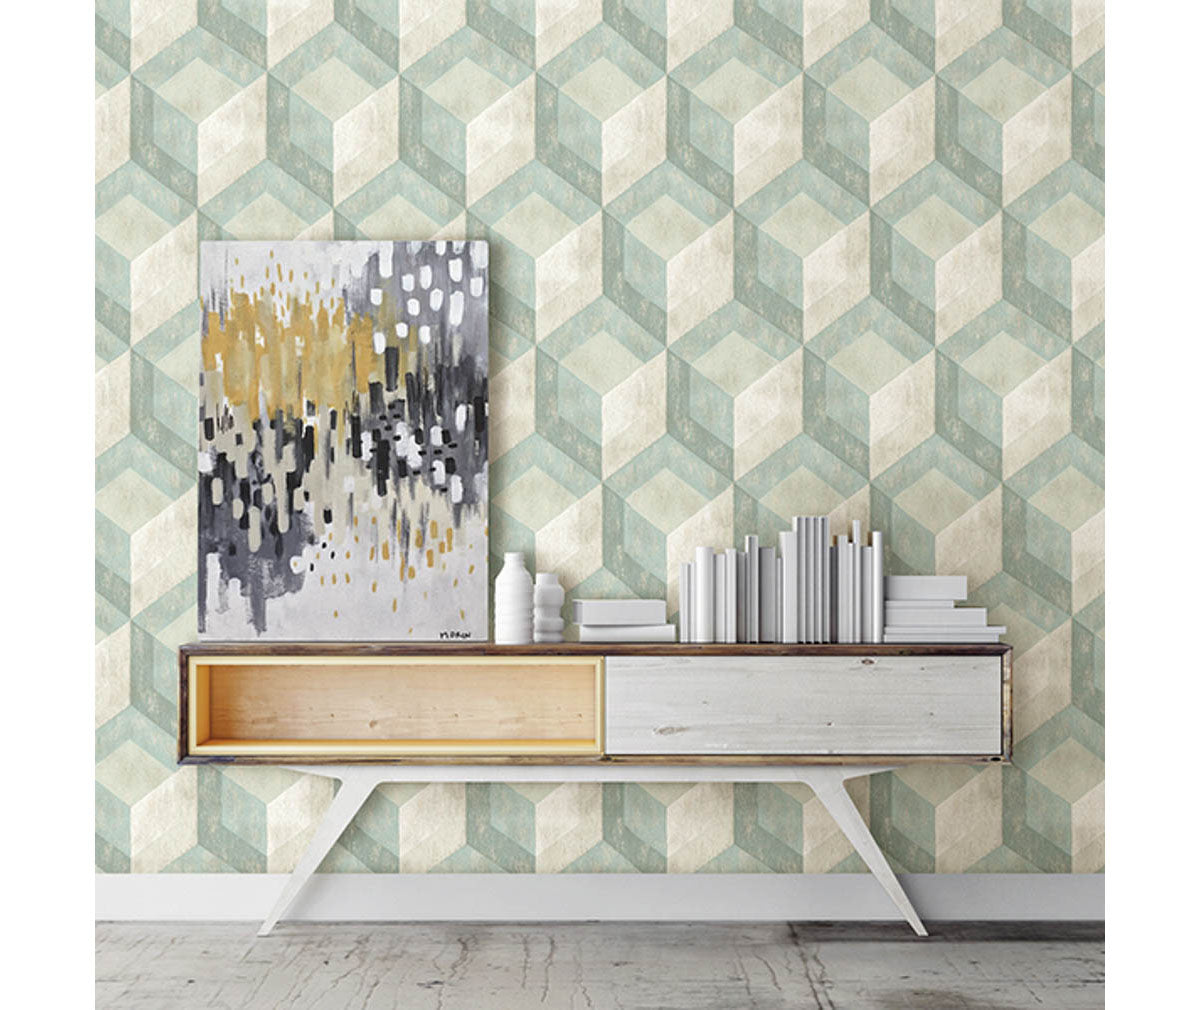 Rustic Wood Tile Green Geometric Wallpaper Room Mock Up Available At Barrydowne Paint